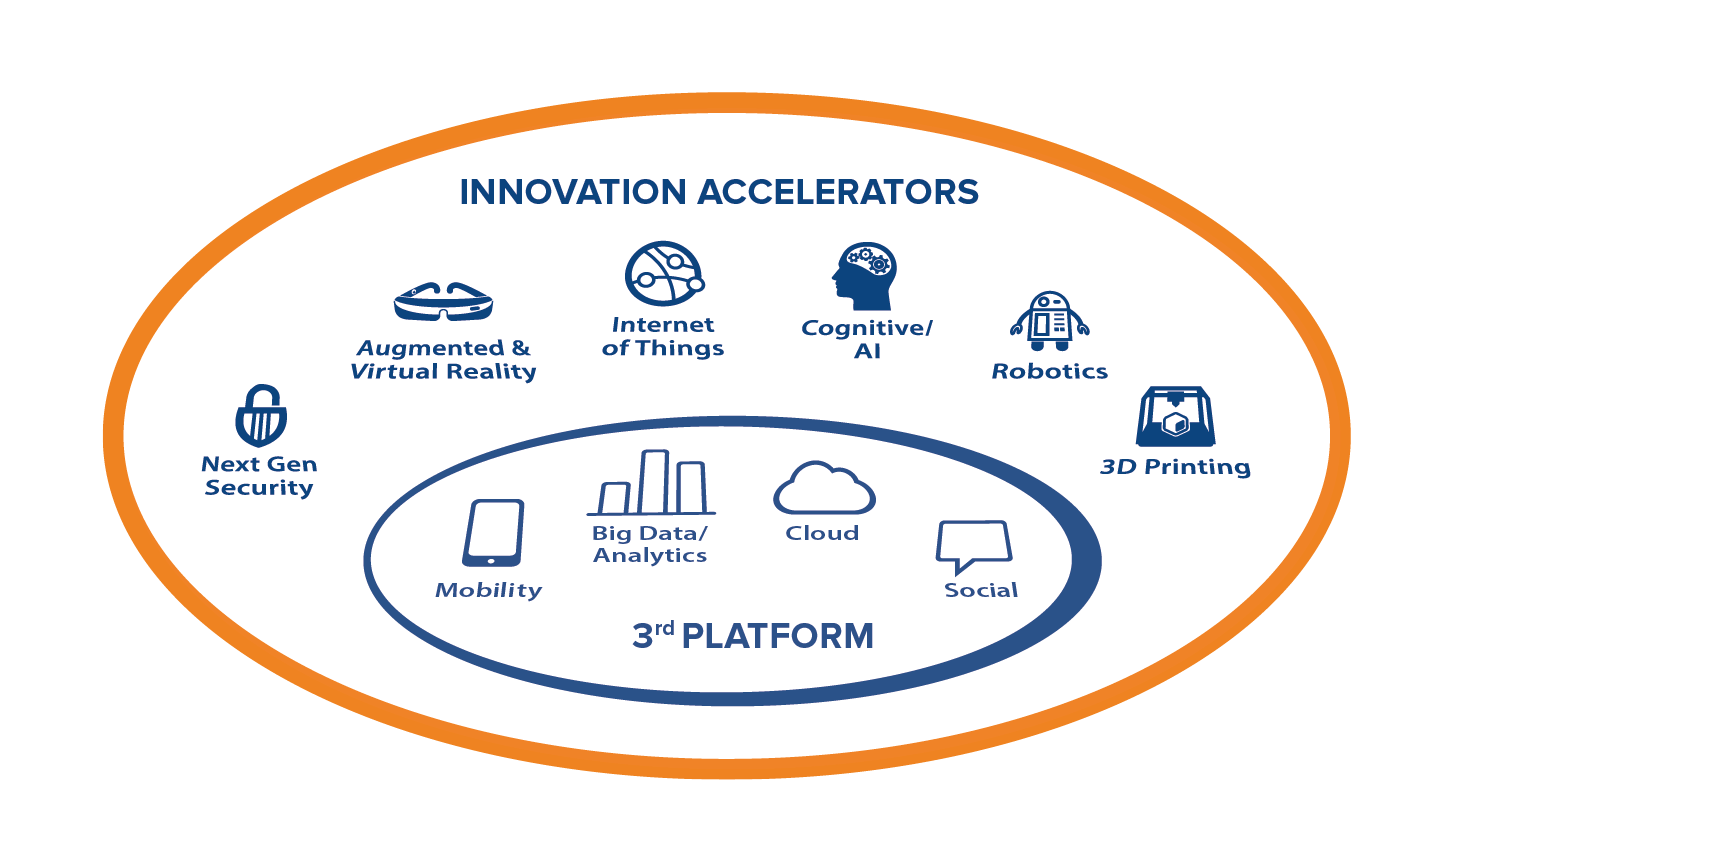 InnovationAccelerators